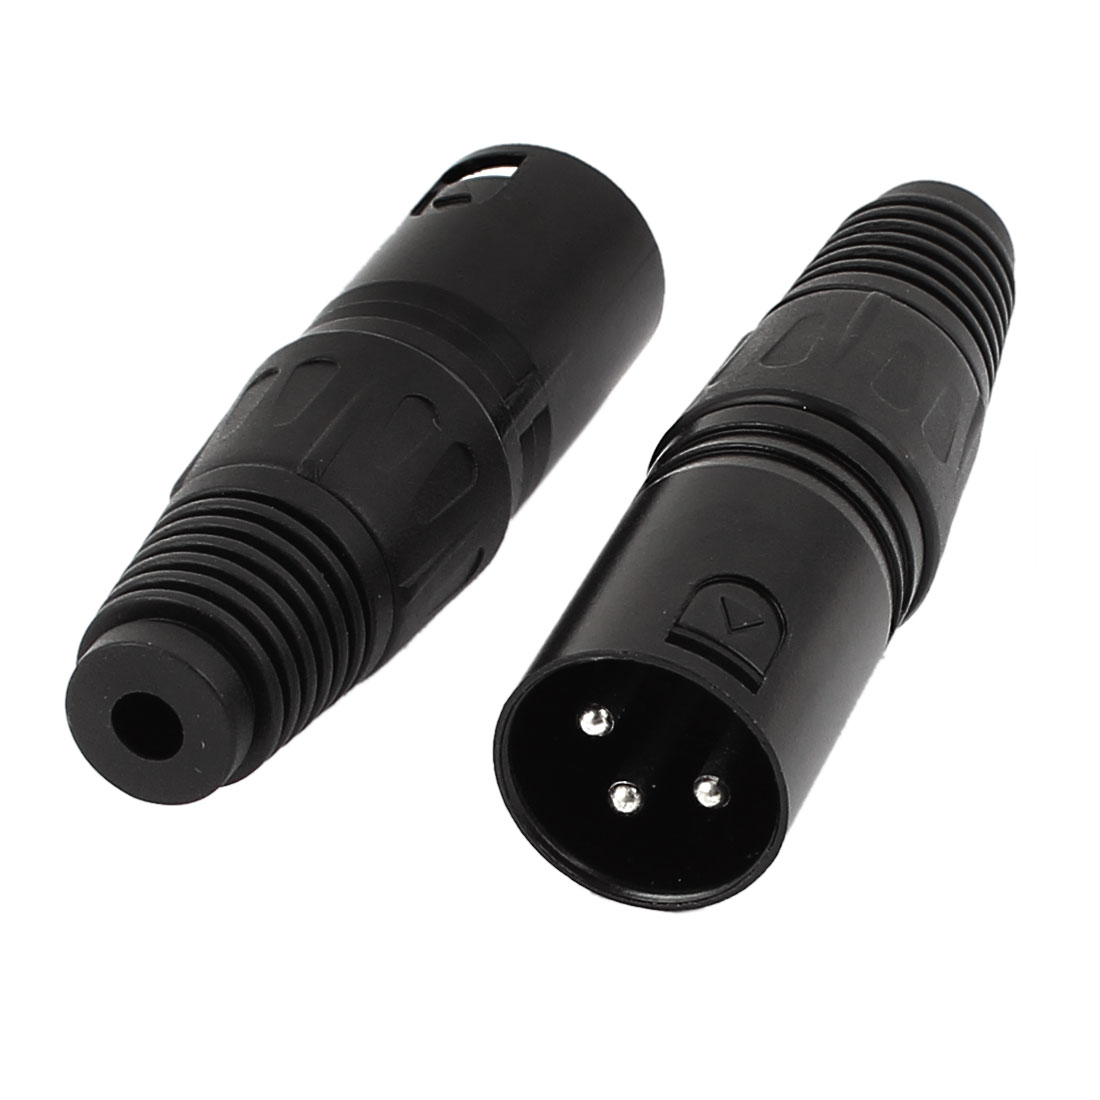 2 Pcs XLR Male Microphone Cable Audio Adapter Connector Black